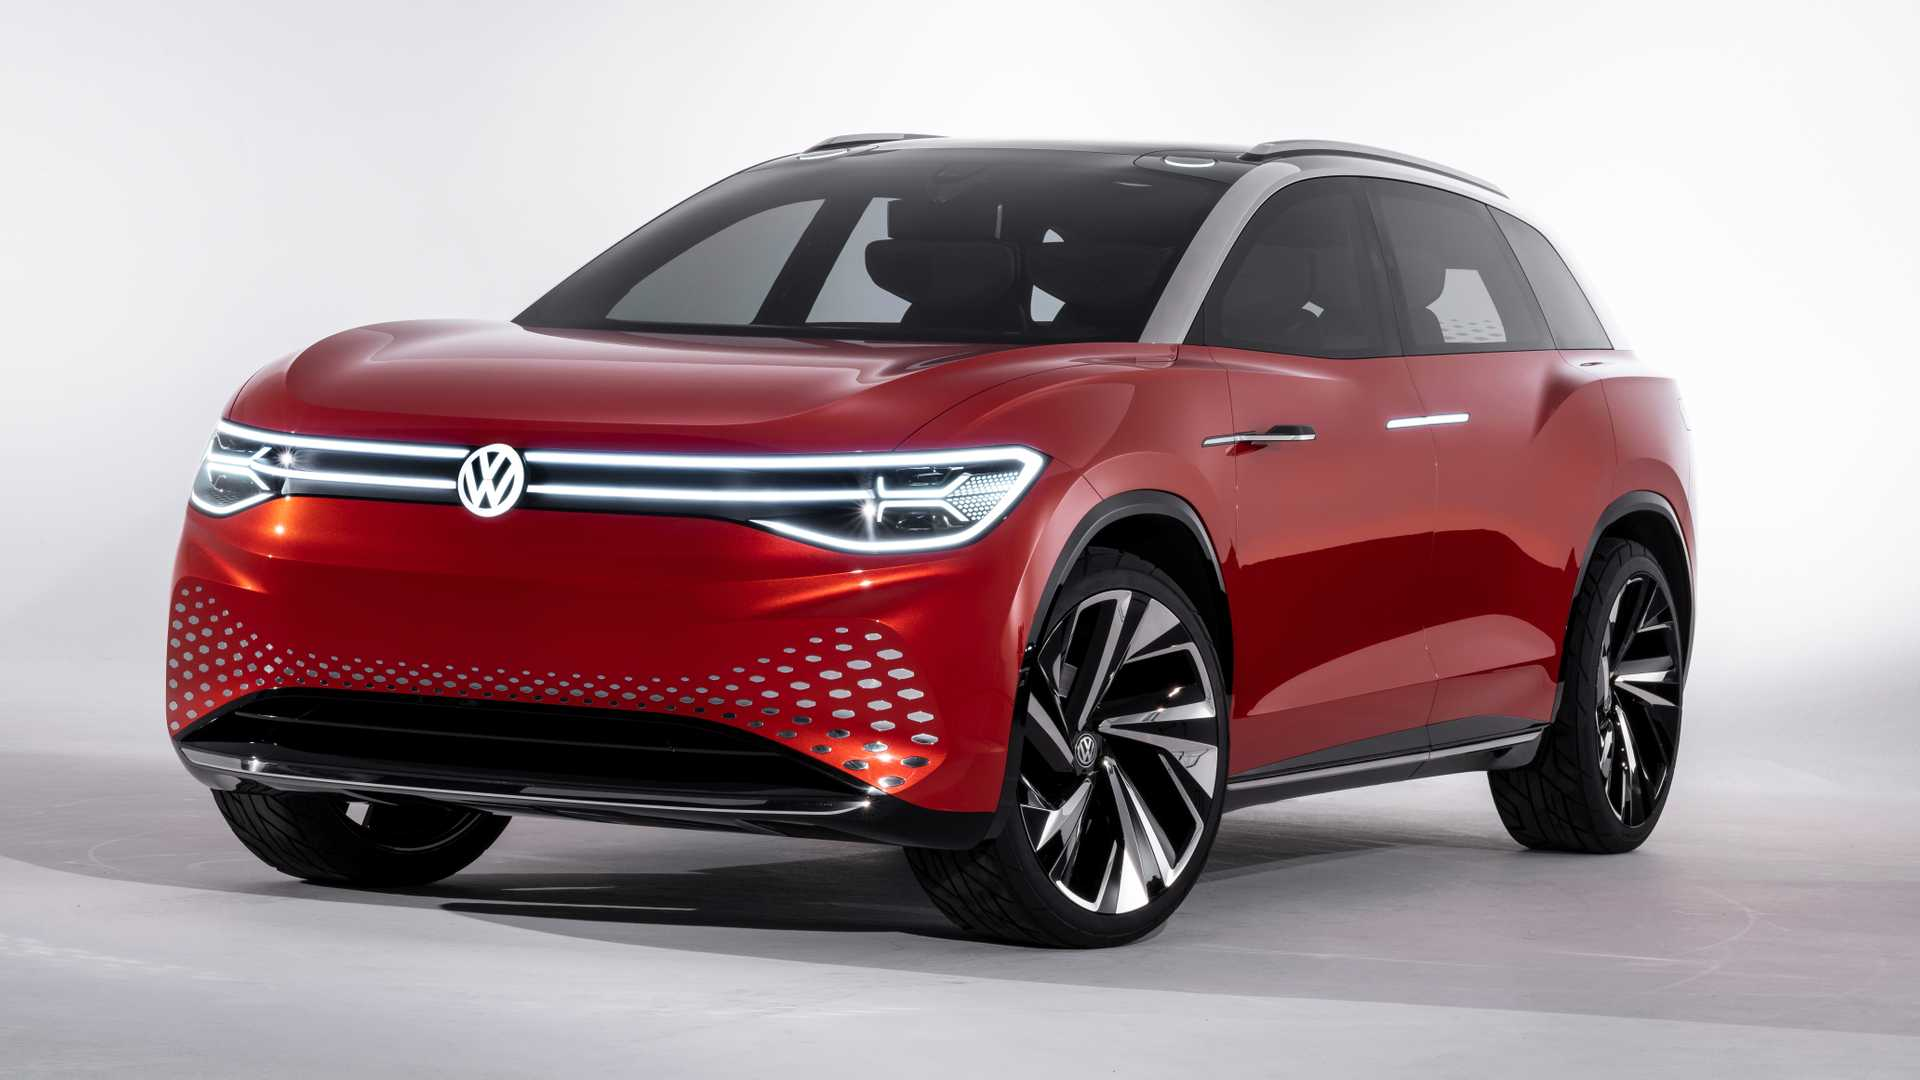 Volkswagen AG has attended the Brand SUV Night with its latest concept SUV called the ID. Roomzz